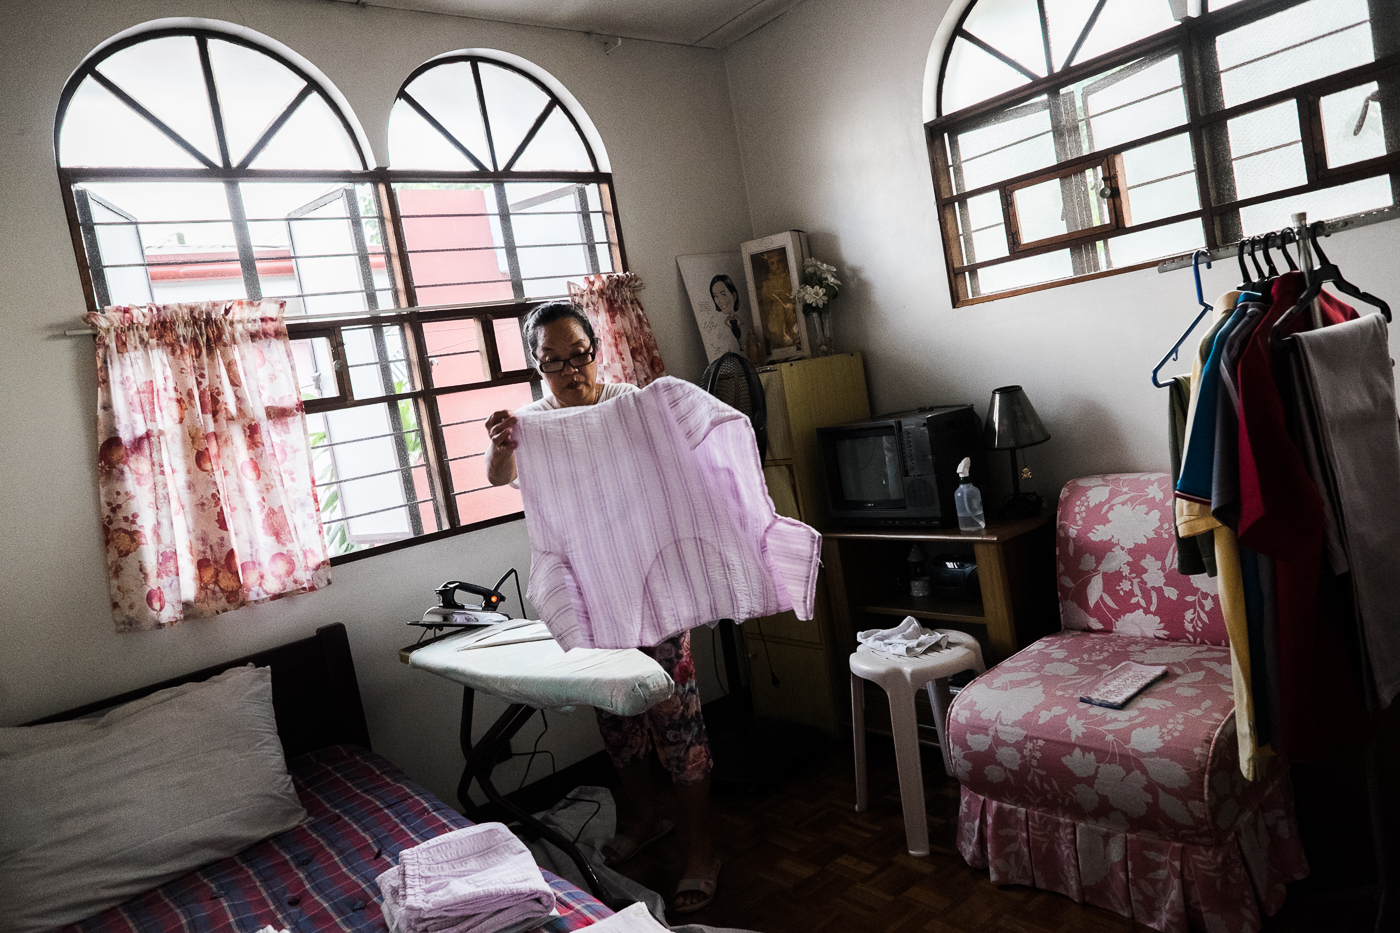 MULTI-TASKING. Domestic workers in some Southeast Asian countries work for 14 hours a day with pay below the minimum wage. Photo by Pat Nabong/Rappler